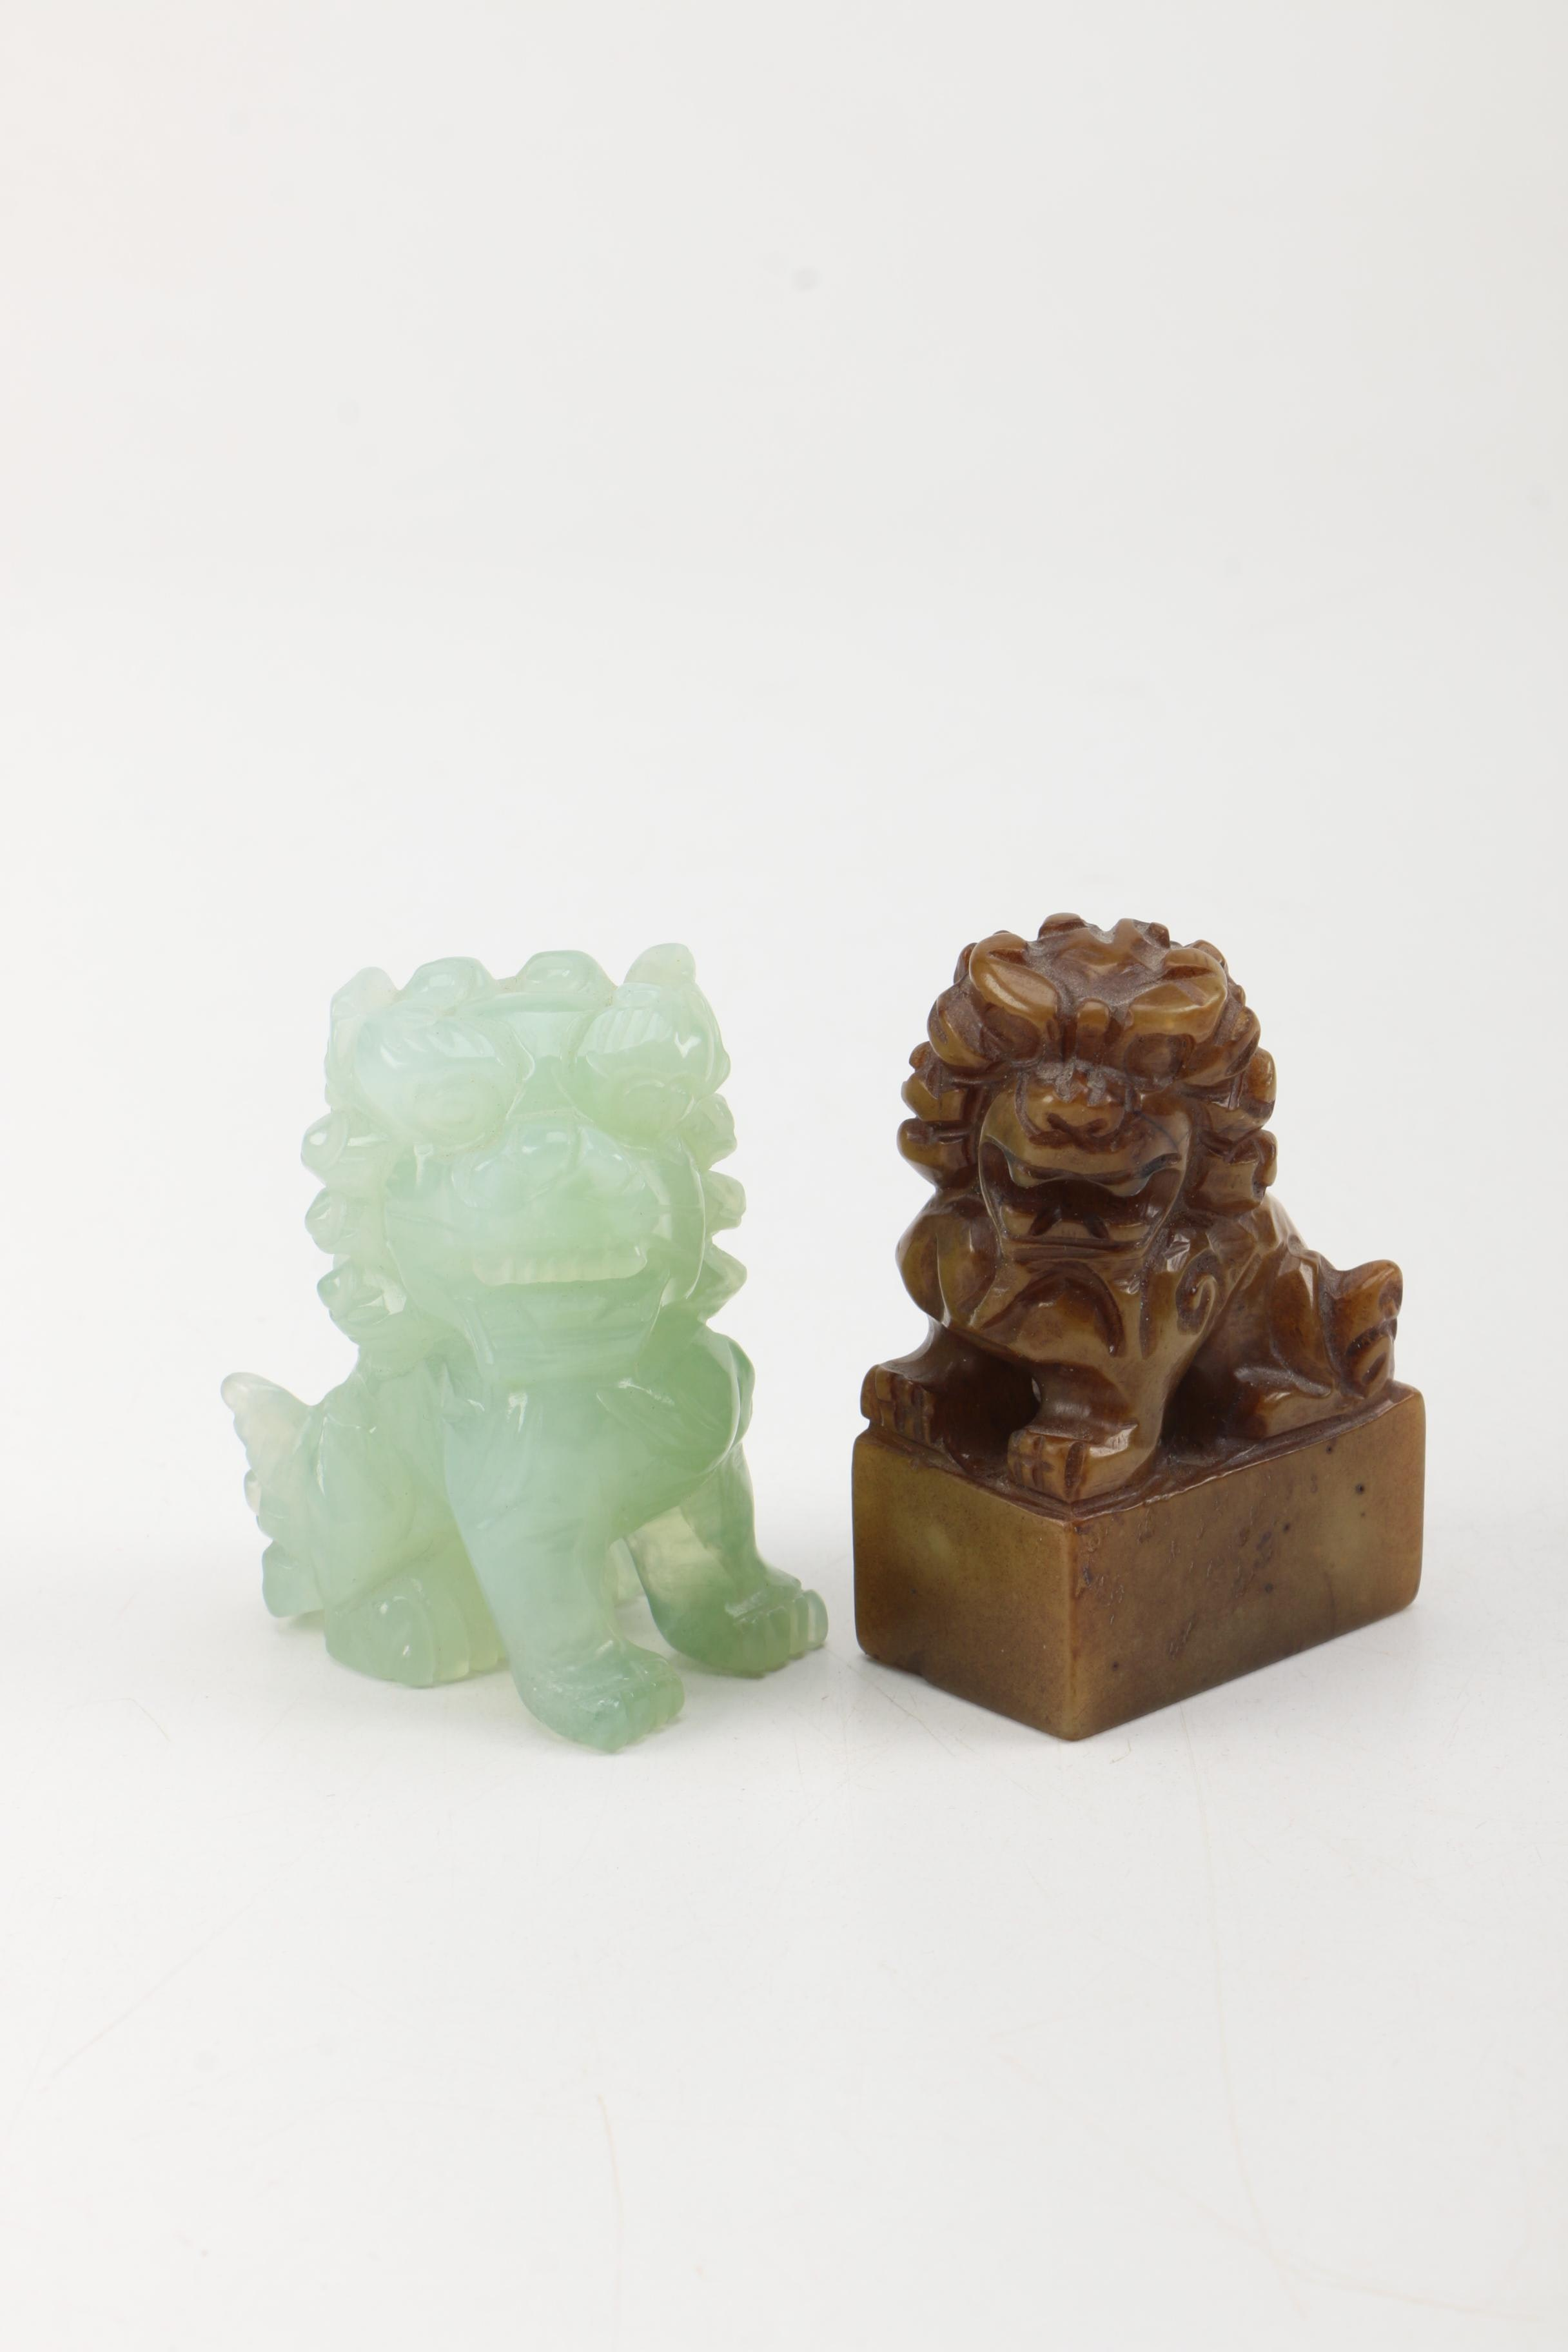 Pair of Guardian Lion Figurines